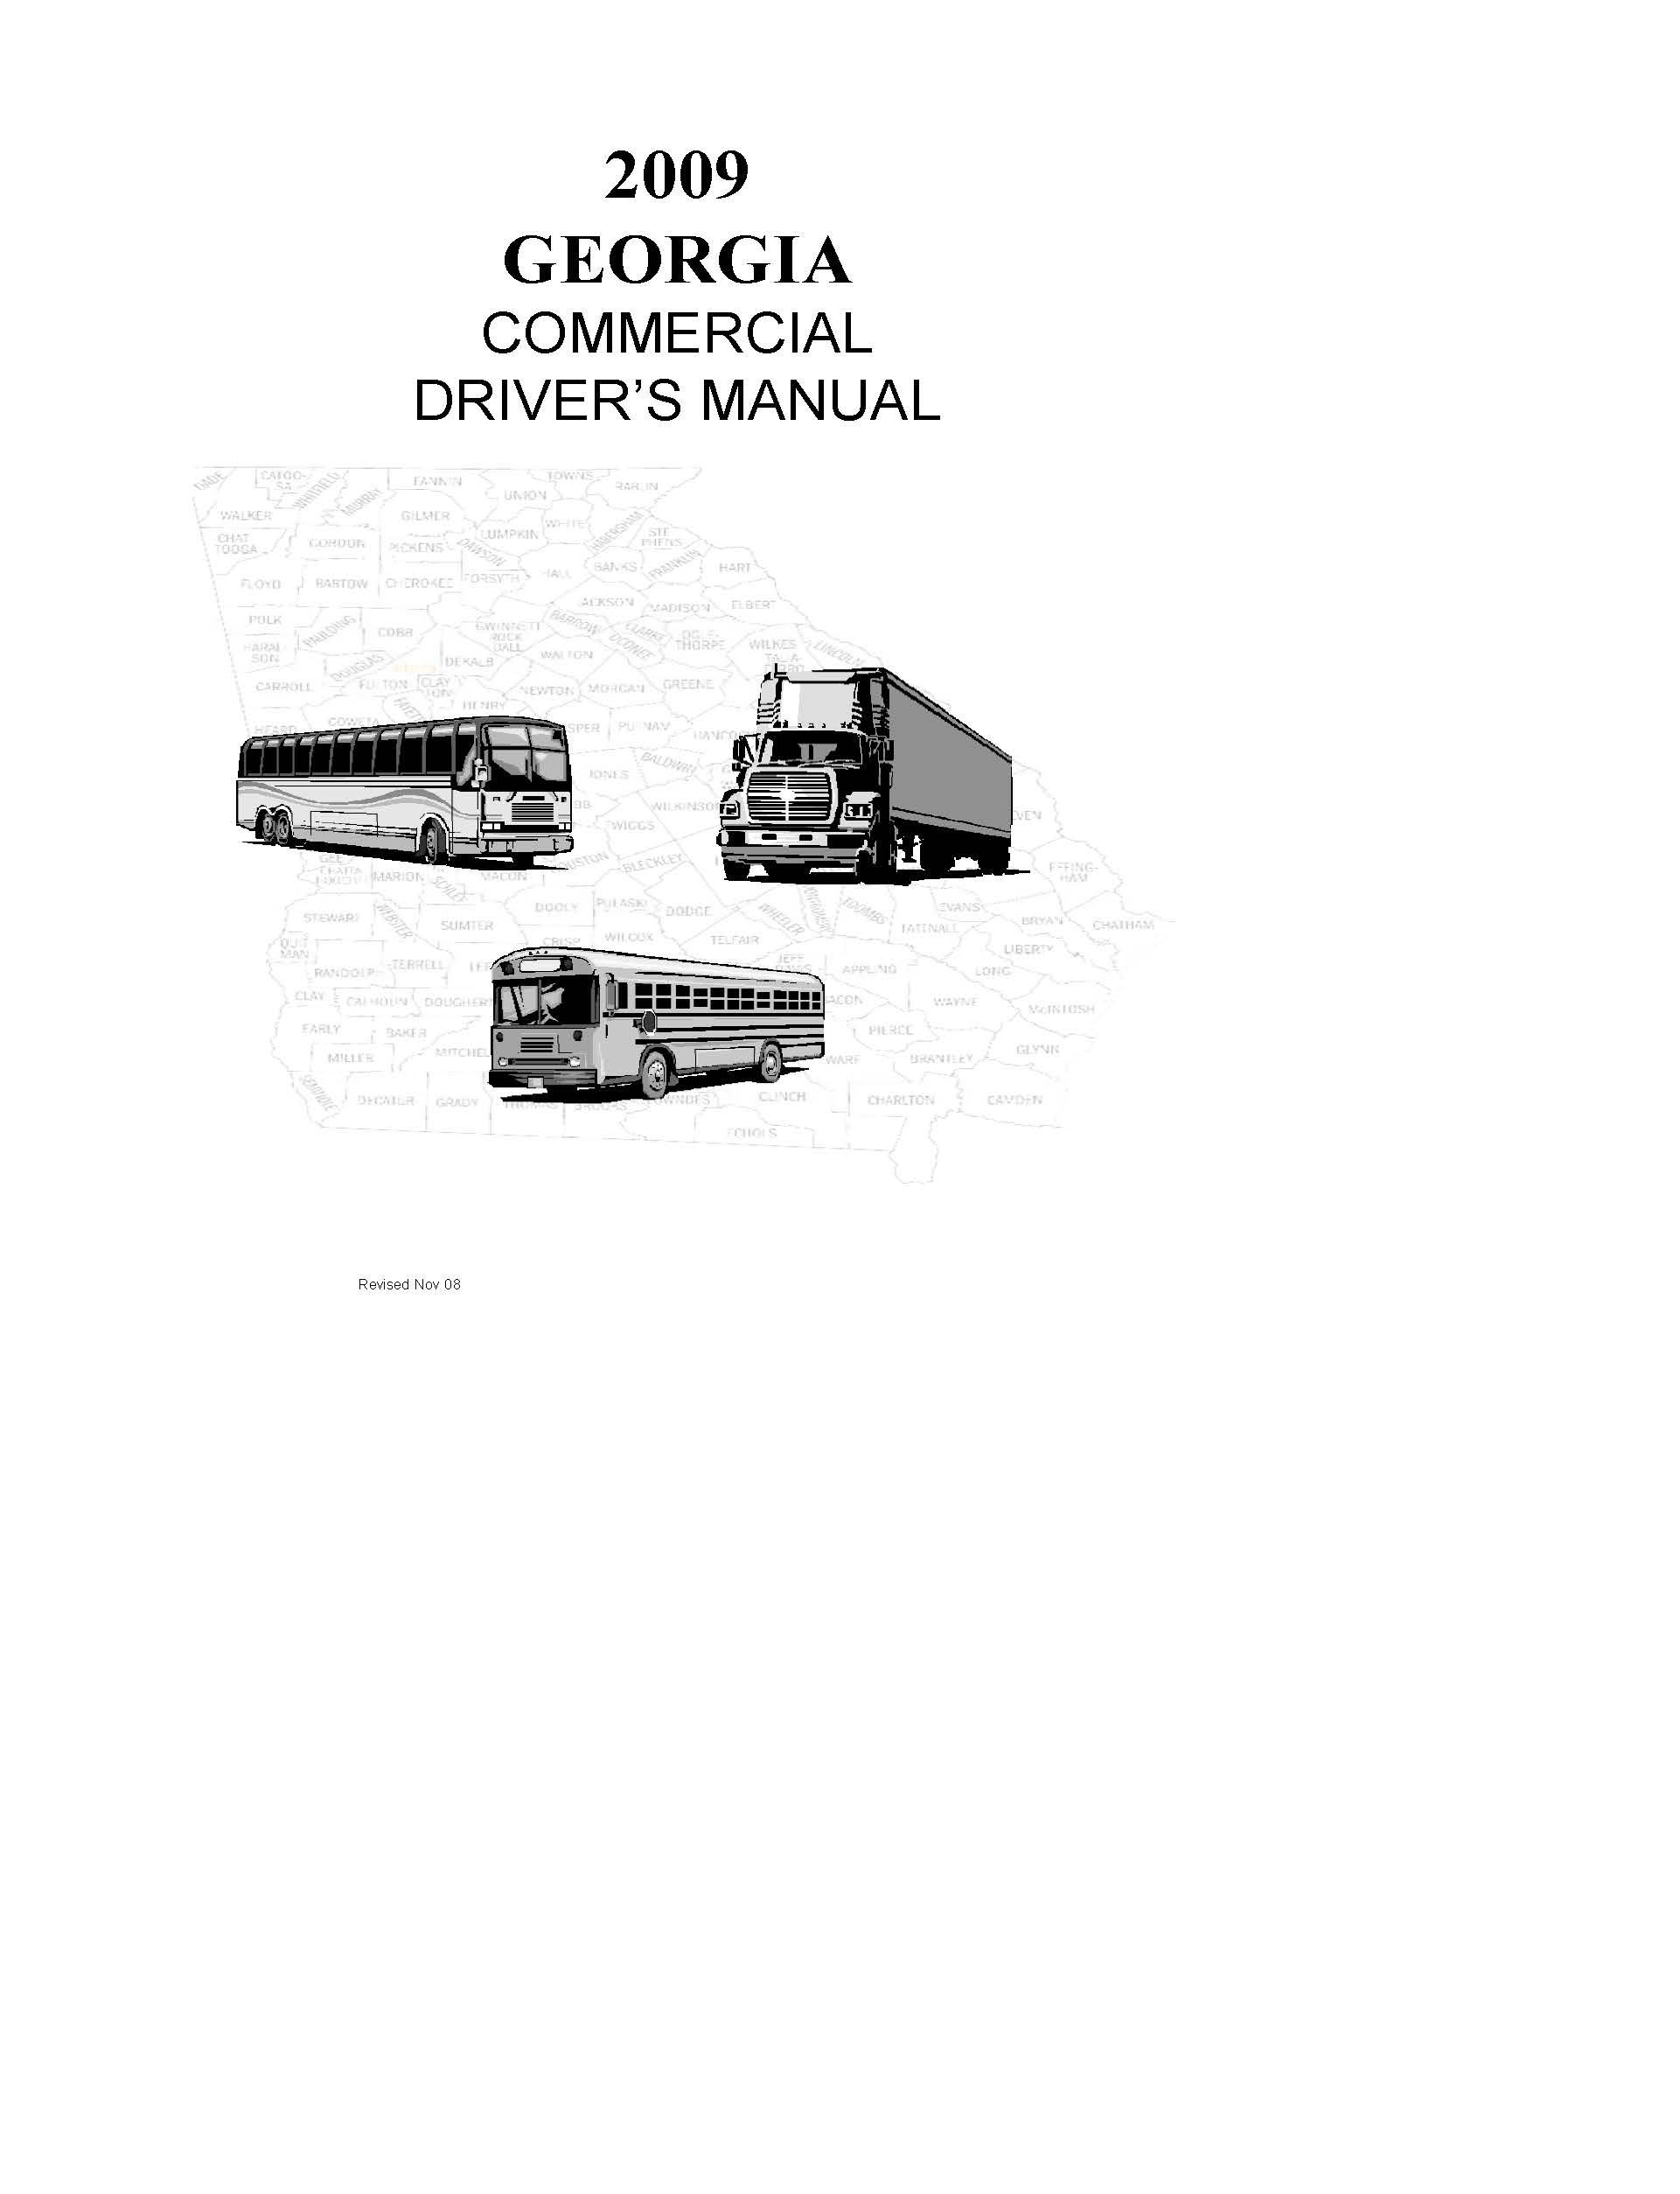 Colorado commercial driver license (cdl) driver manual | colorado.